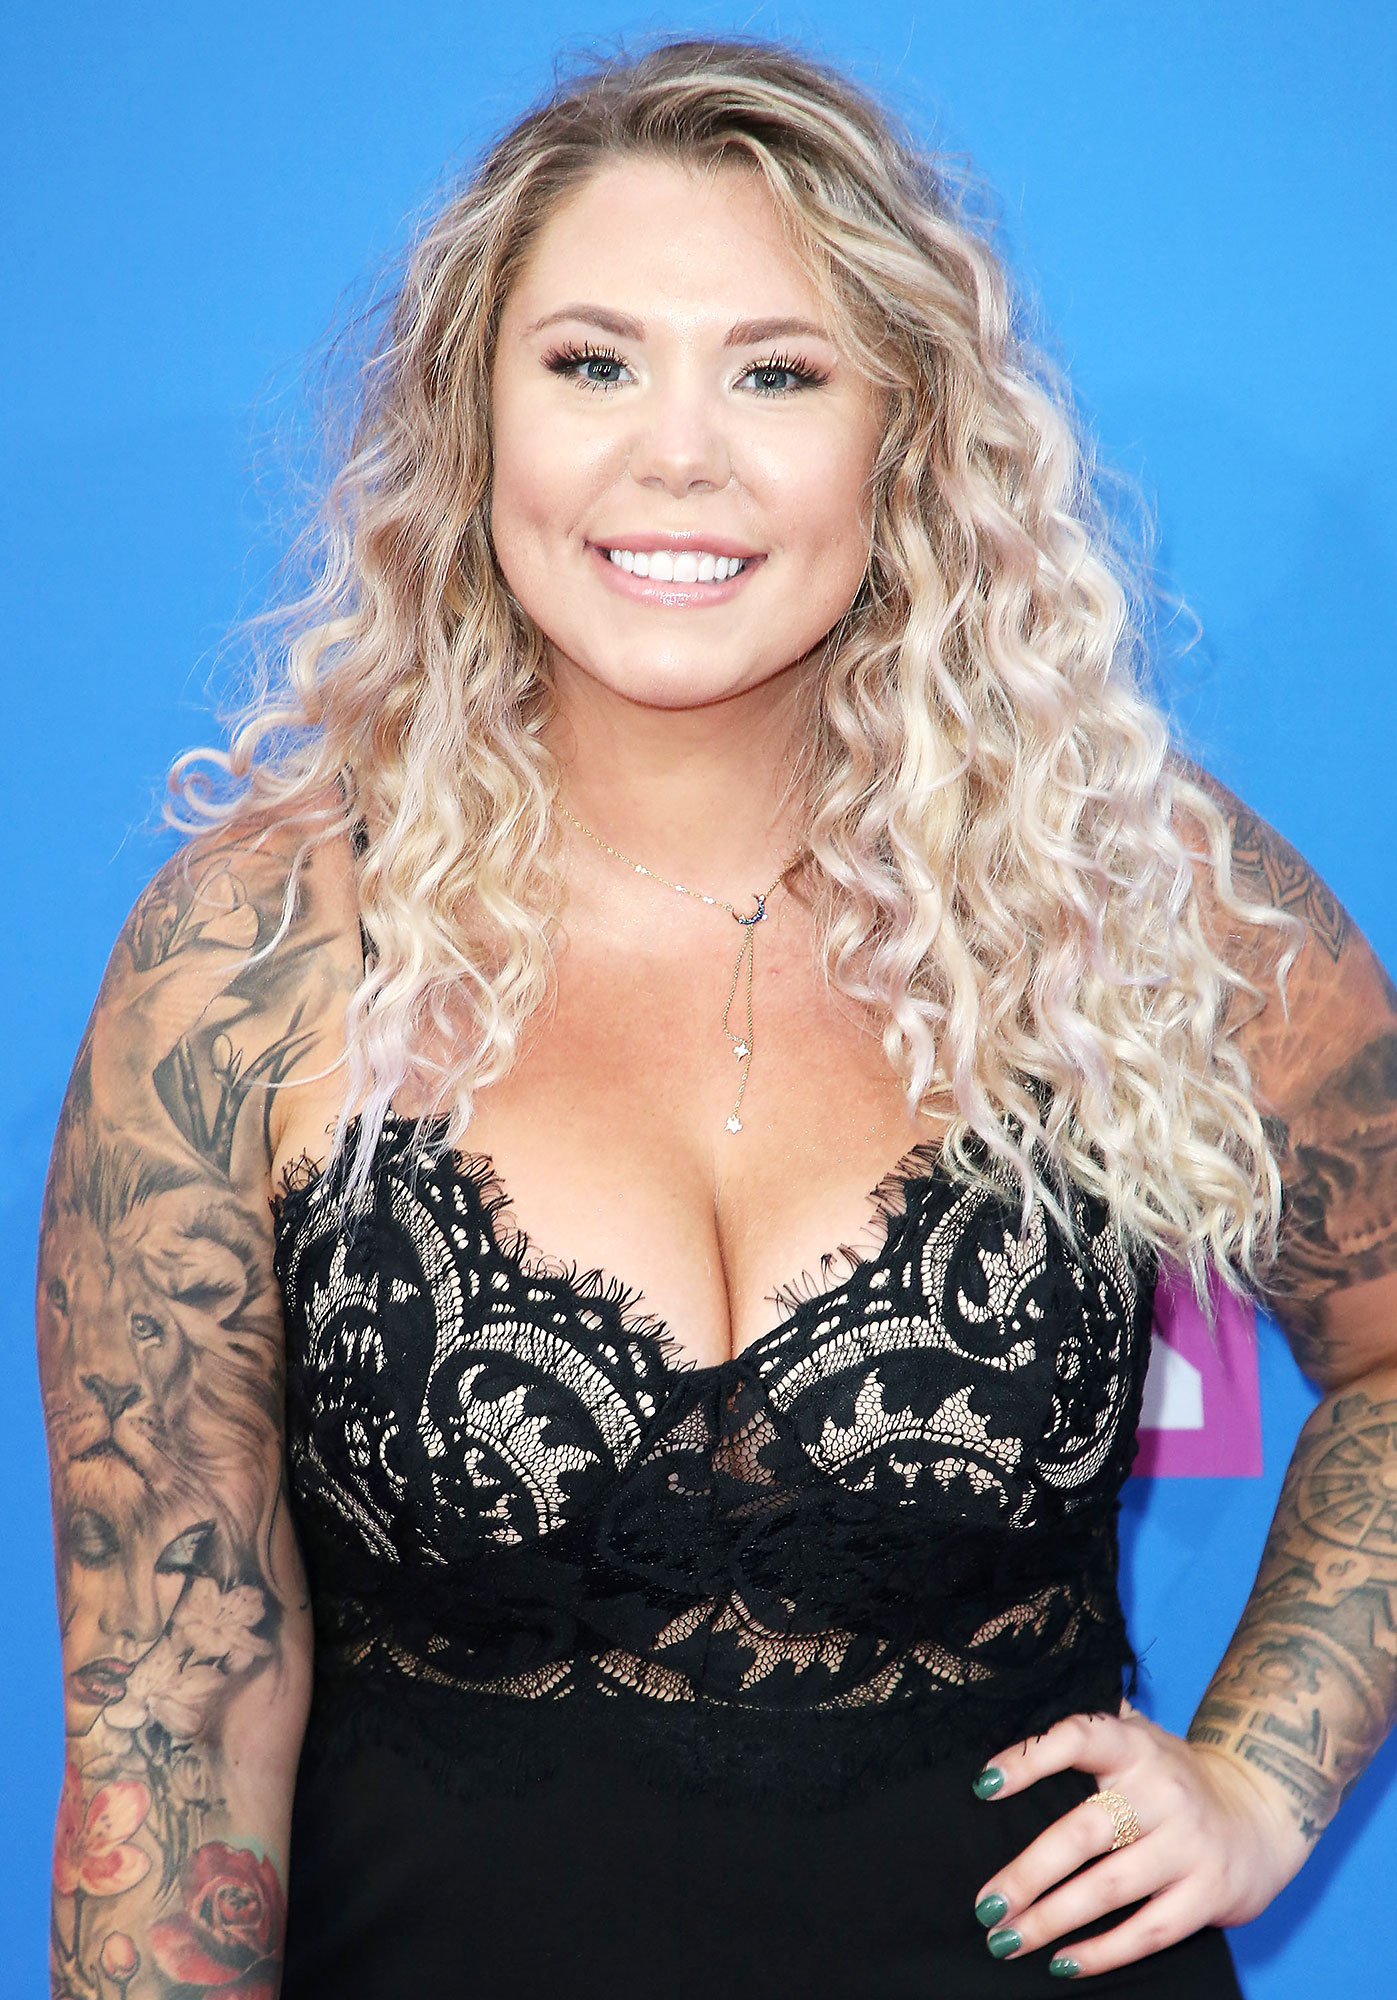 Kailyn Lowry Reacts to Javi Marroquin and Lauren Comeau's Massive Fight